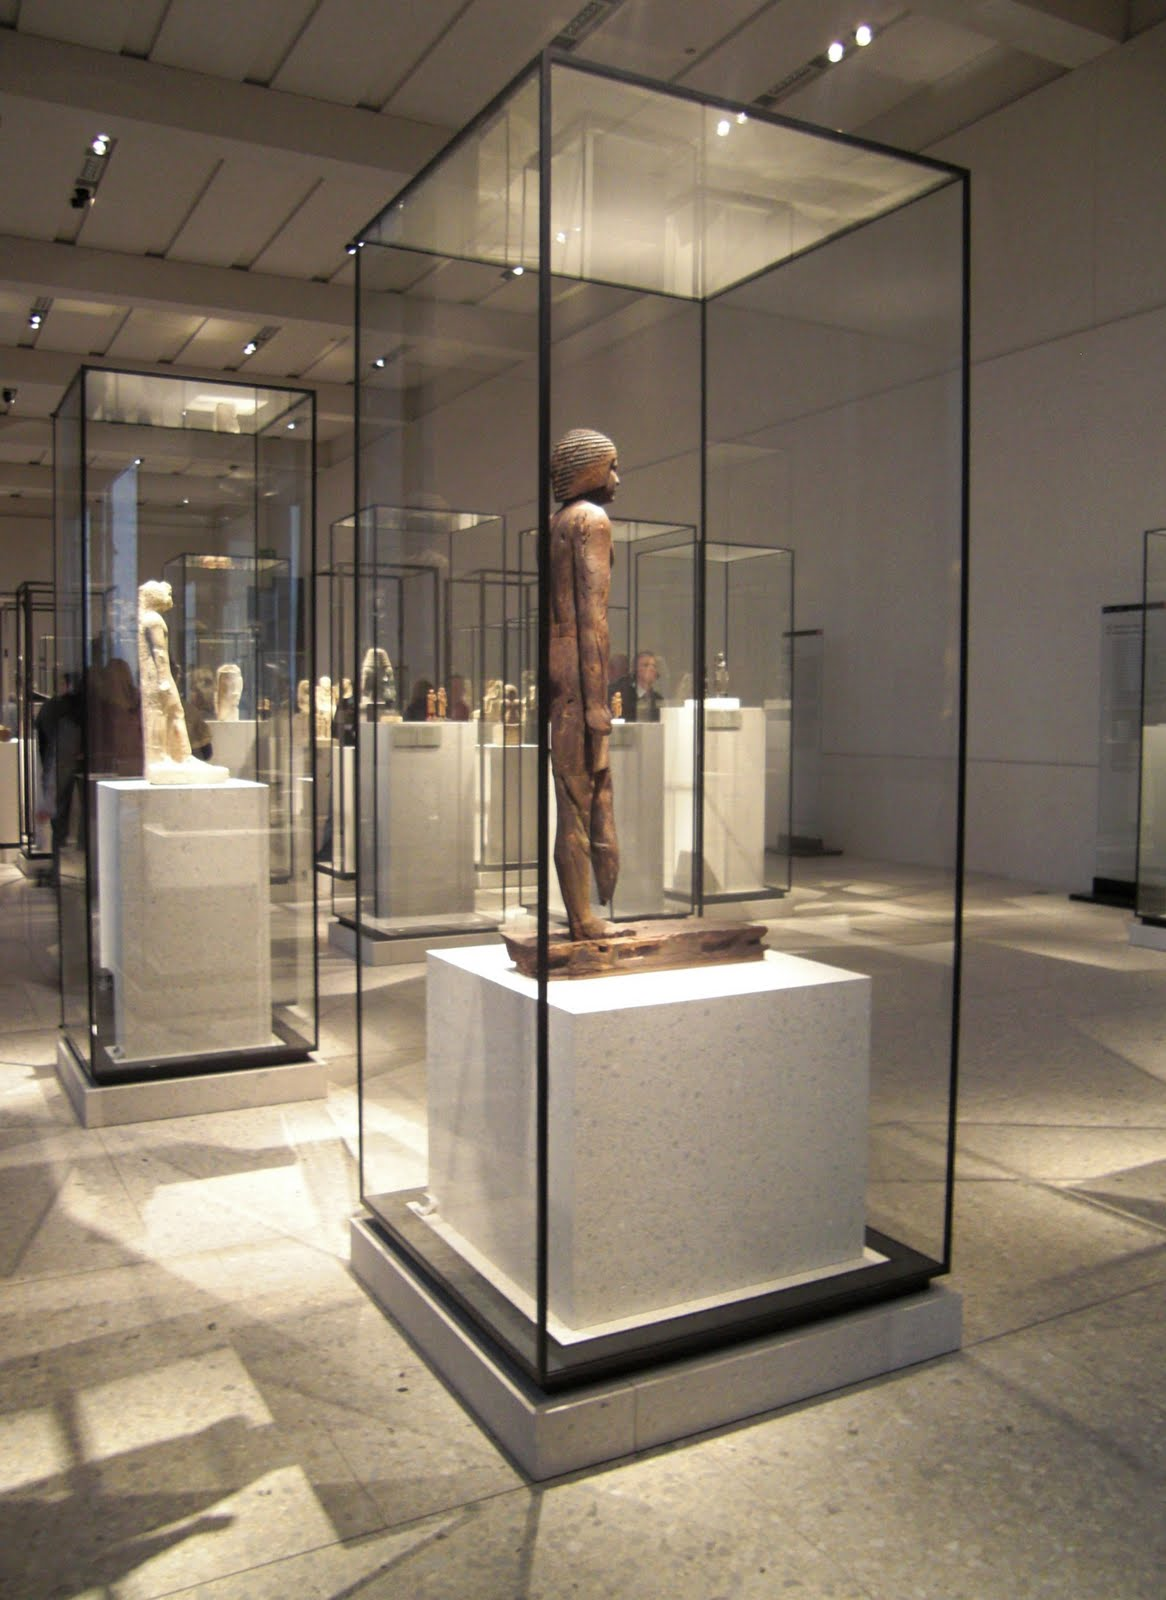 Exhibition Stand Design Case Studies : Ma isd charlotte storrar visit to the neues museum